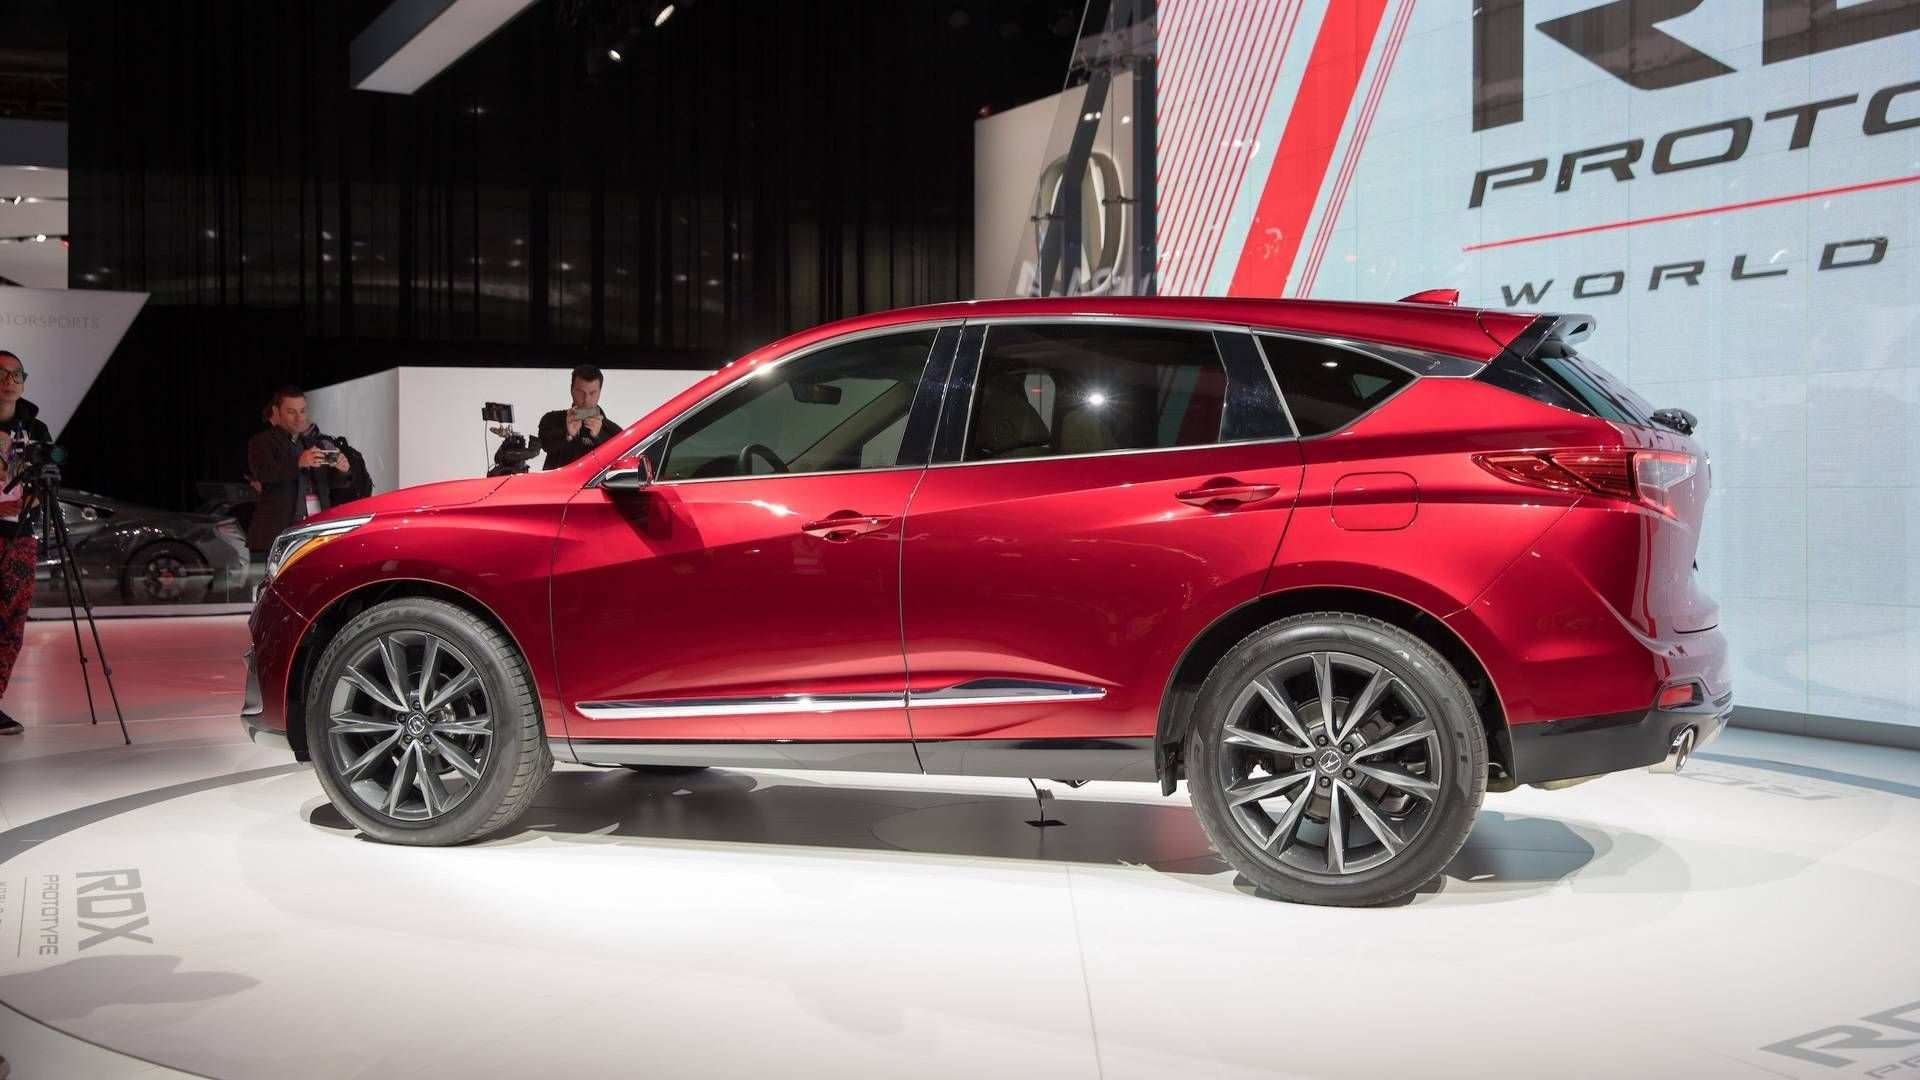 79 Concept of The Acura Rdx 2019 Release Date Usa Spy Shoot Images by The Acura Rdx 2019 Release Date Usa Spy Shoot